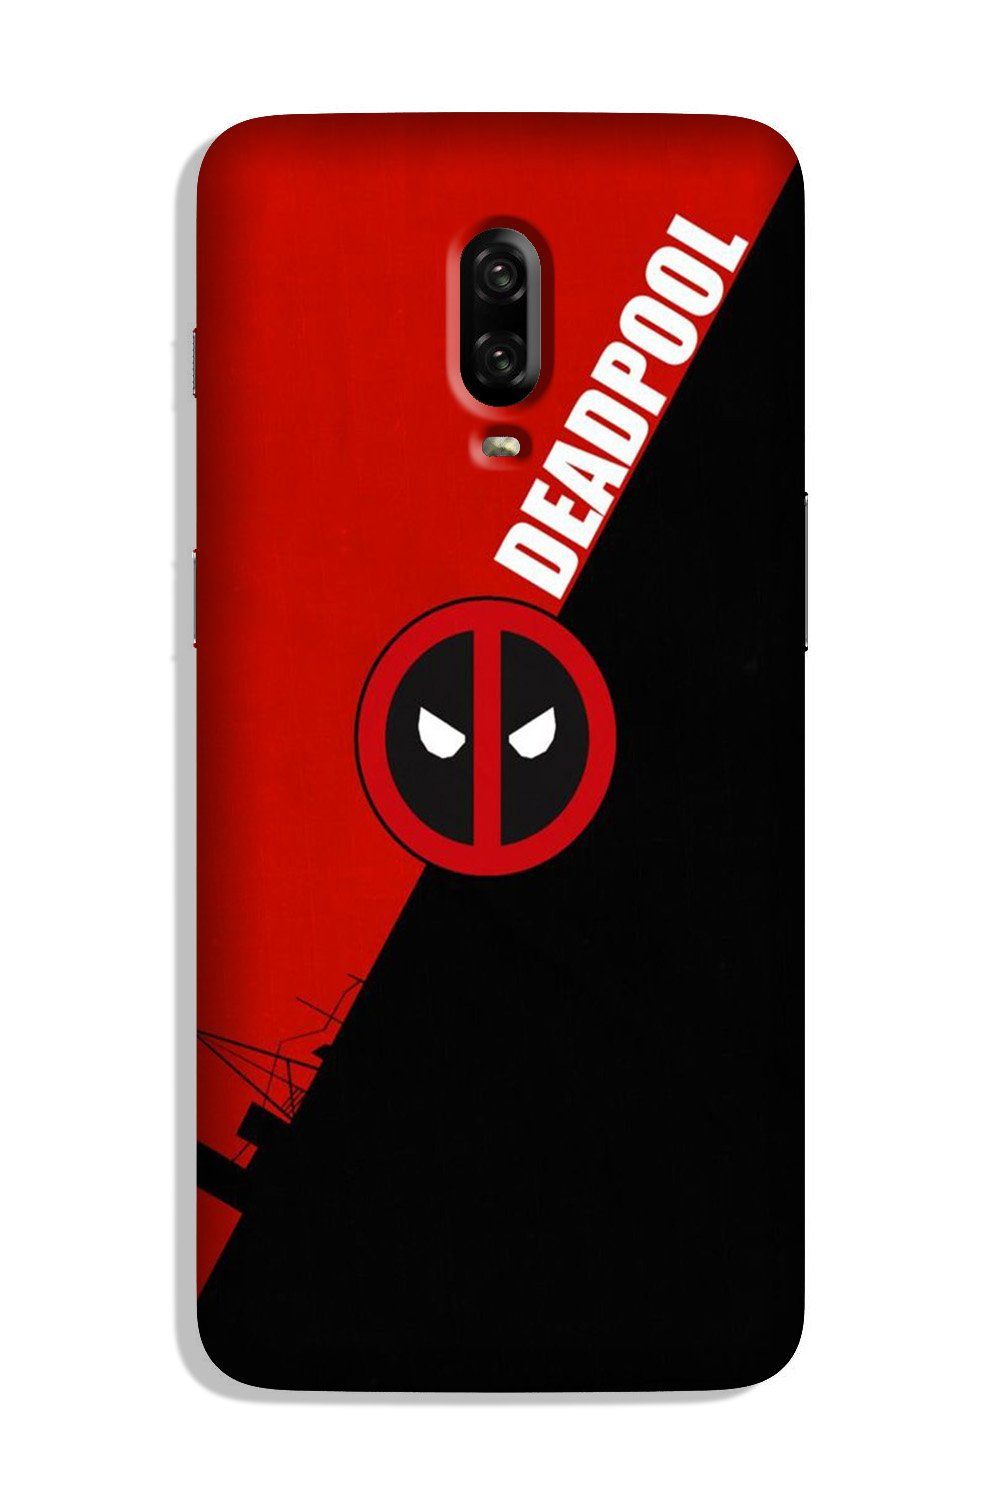 Deadpool Case for OnePlus 6T (Design No. 248)